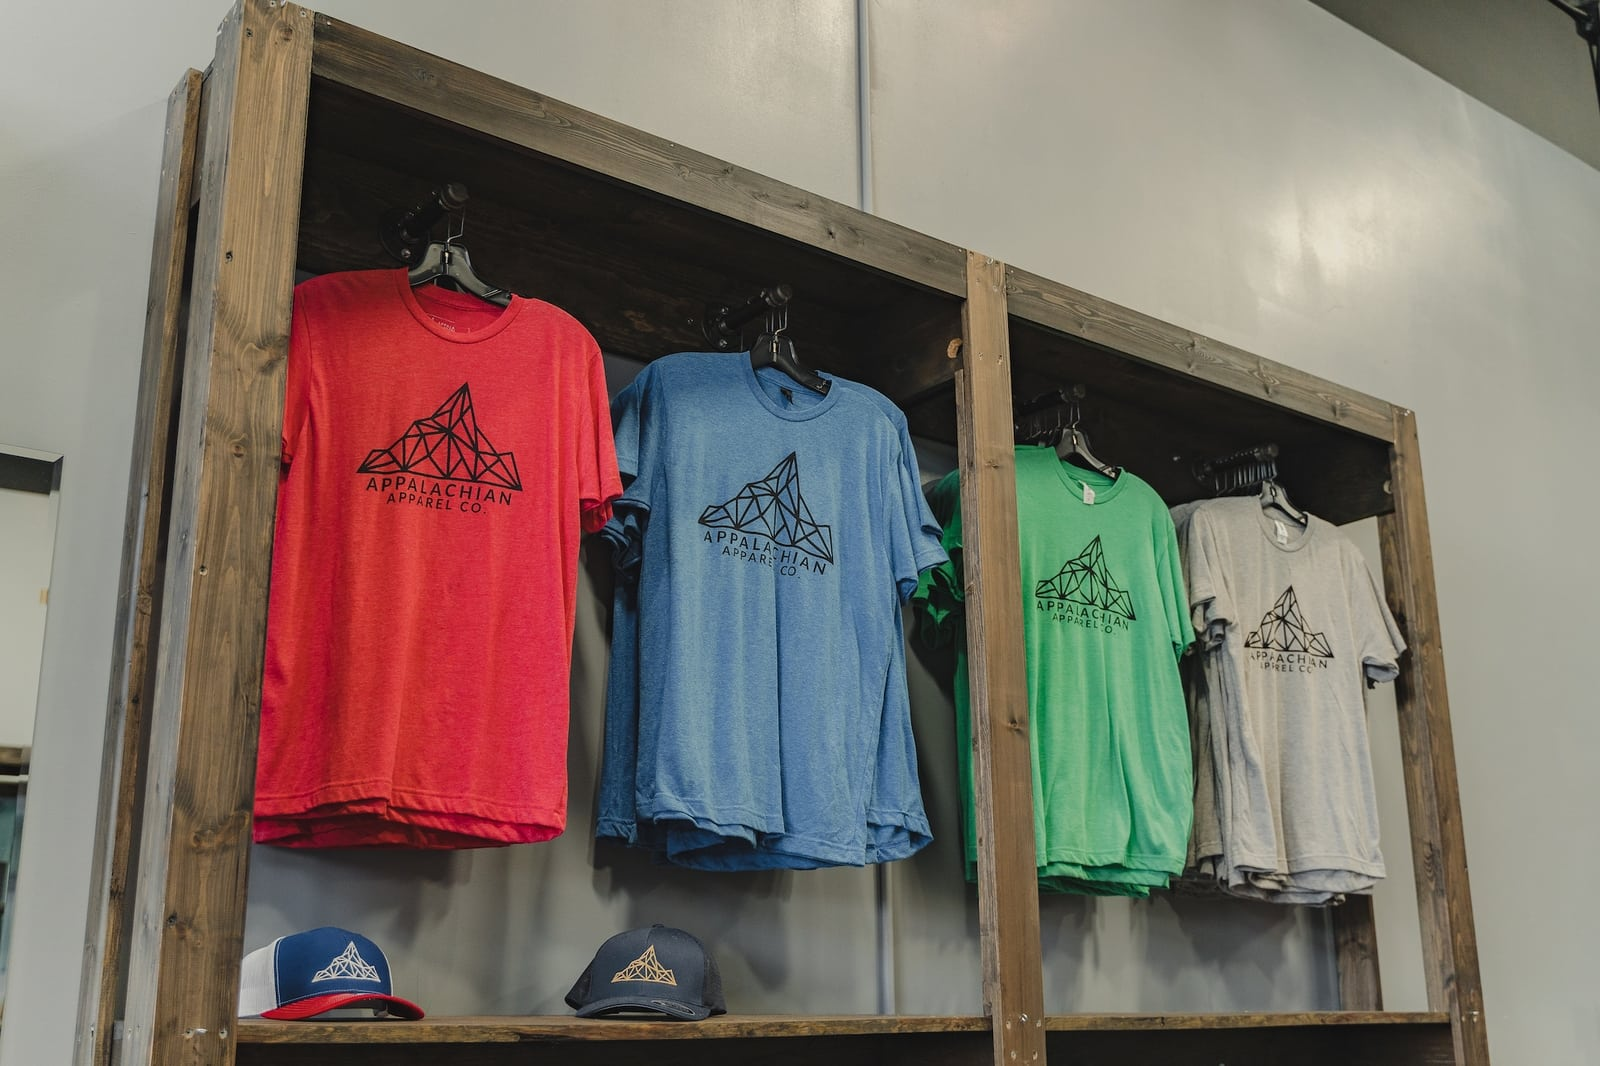 appalachain apparel co in the mountain mile in pigeon forge